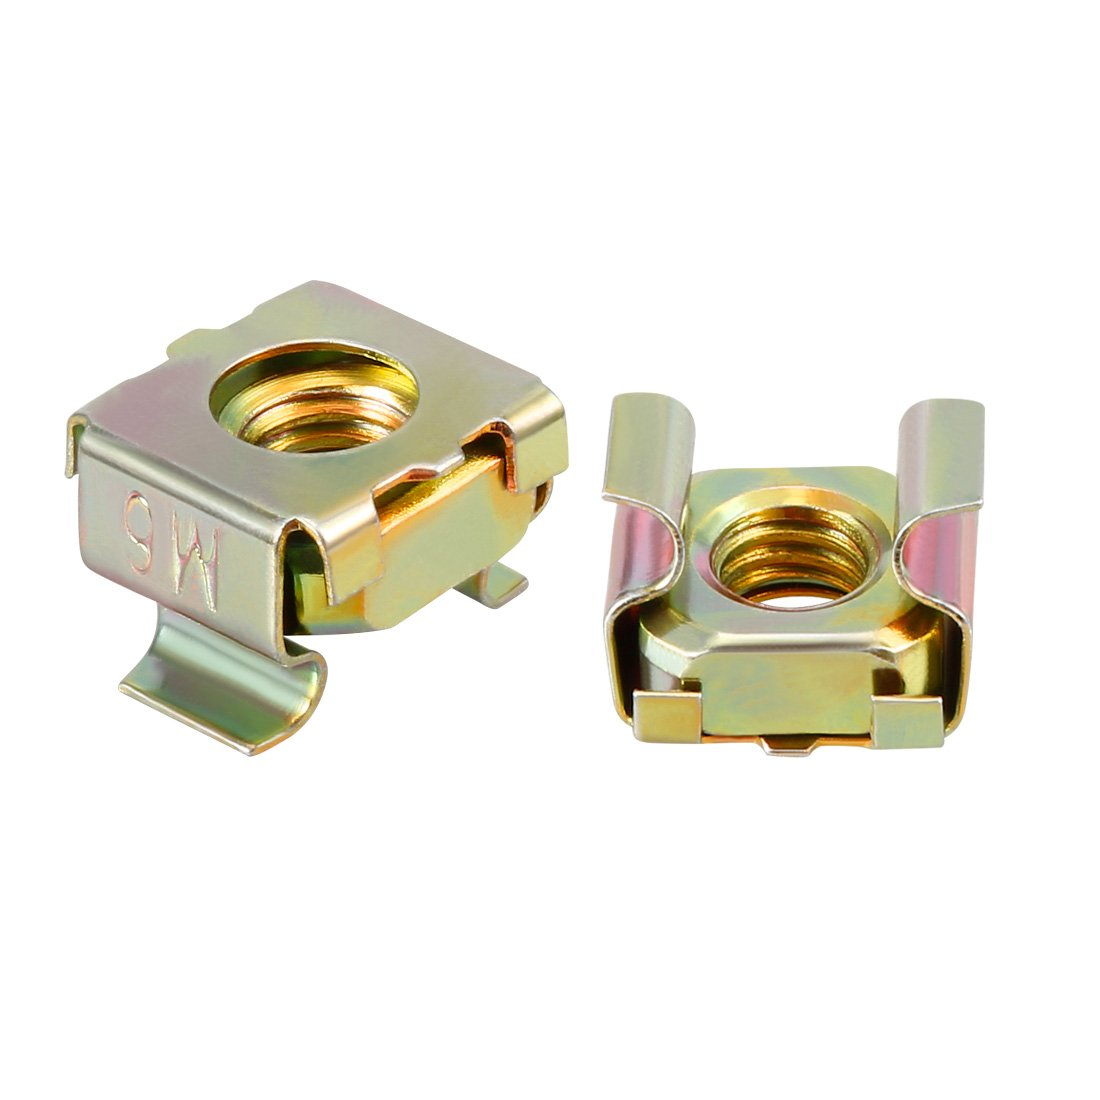 uxcell® 55 Pack, M6 Cage Nut, Carbon Steel Zinc Plated Bronze Tone for Server Shelf Cabinet a17103100ux0489